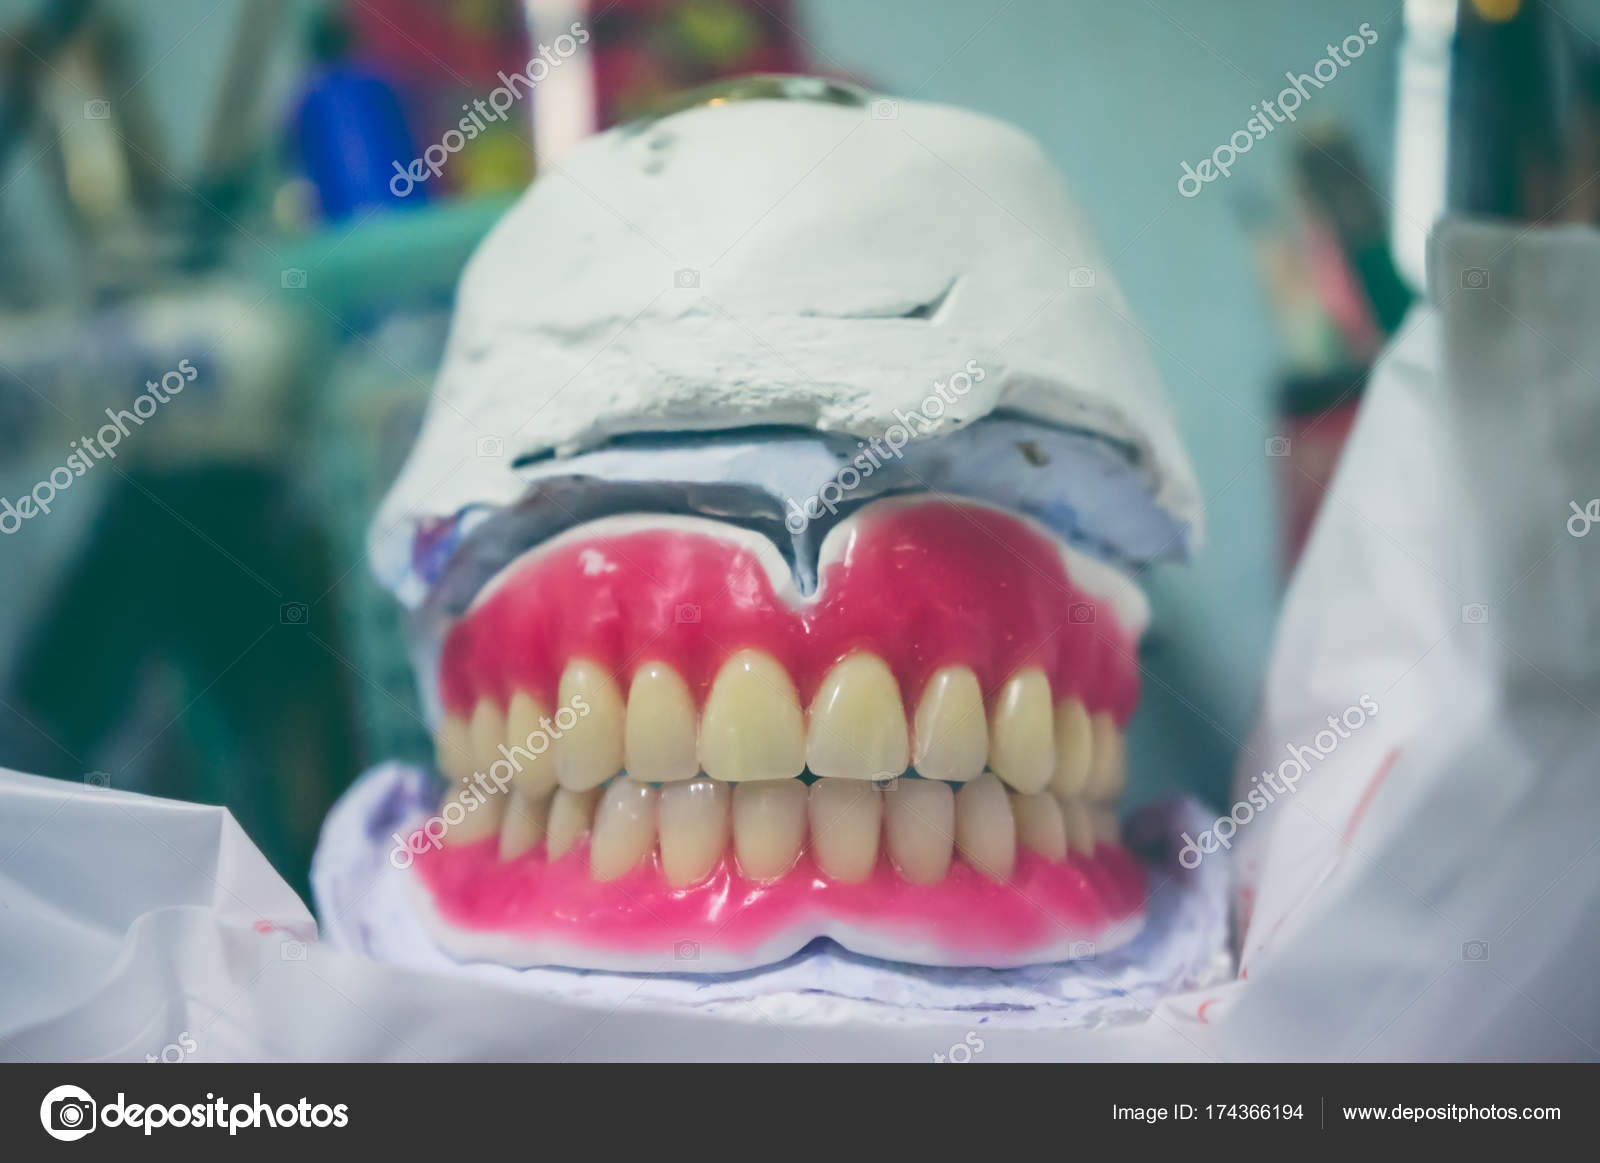 Mould Of Human Teeth Oral Health Concept Stock Photo